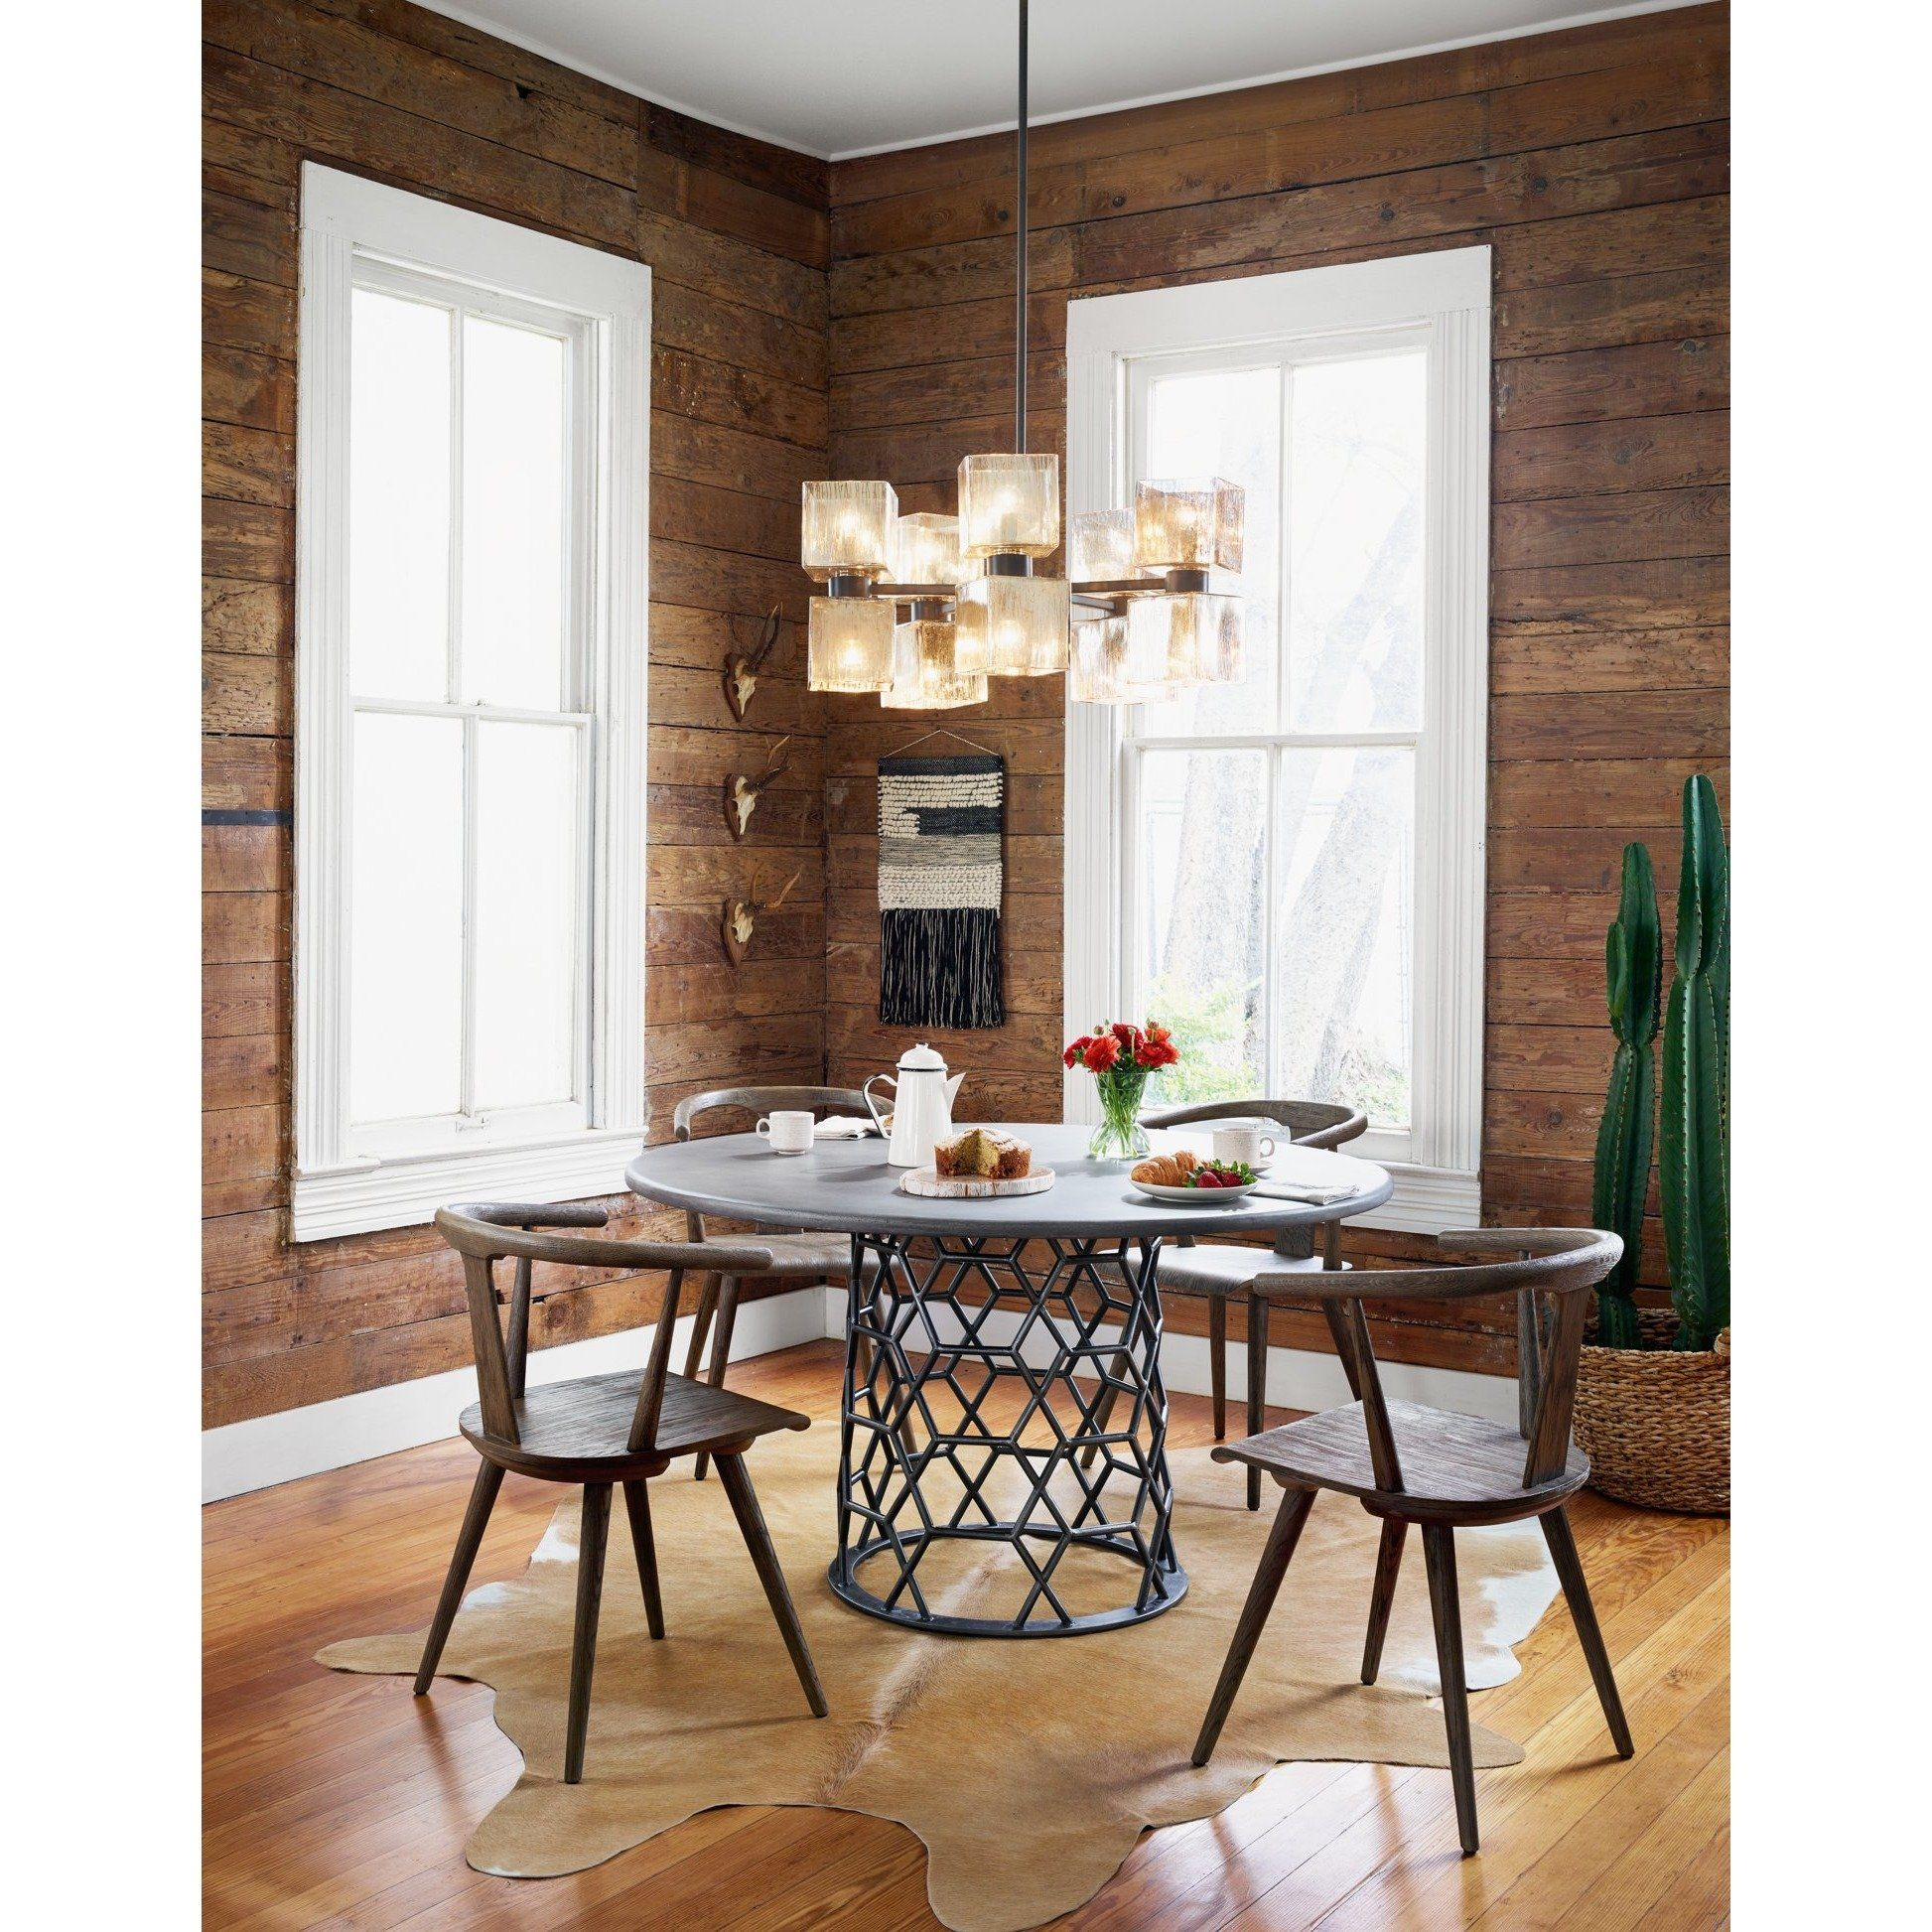 Lovecup Hex Concrete Dining Table LOVECUP